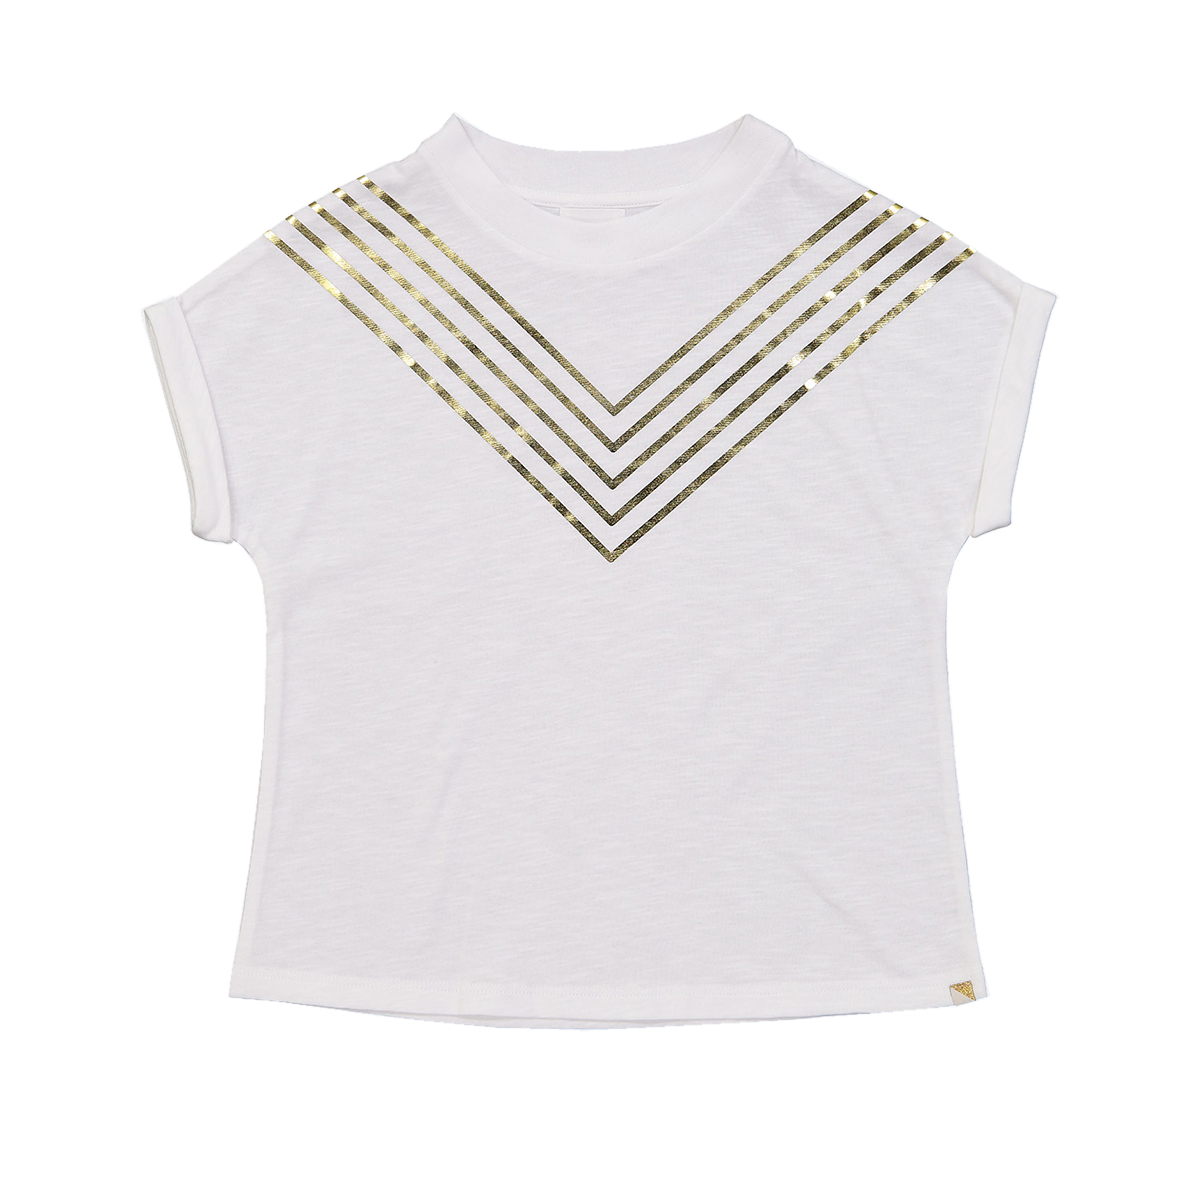 Blune Rock This Way Short Sleeve T-Shirt in White